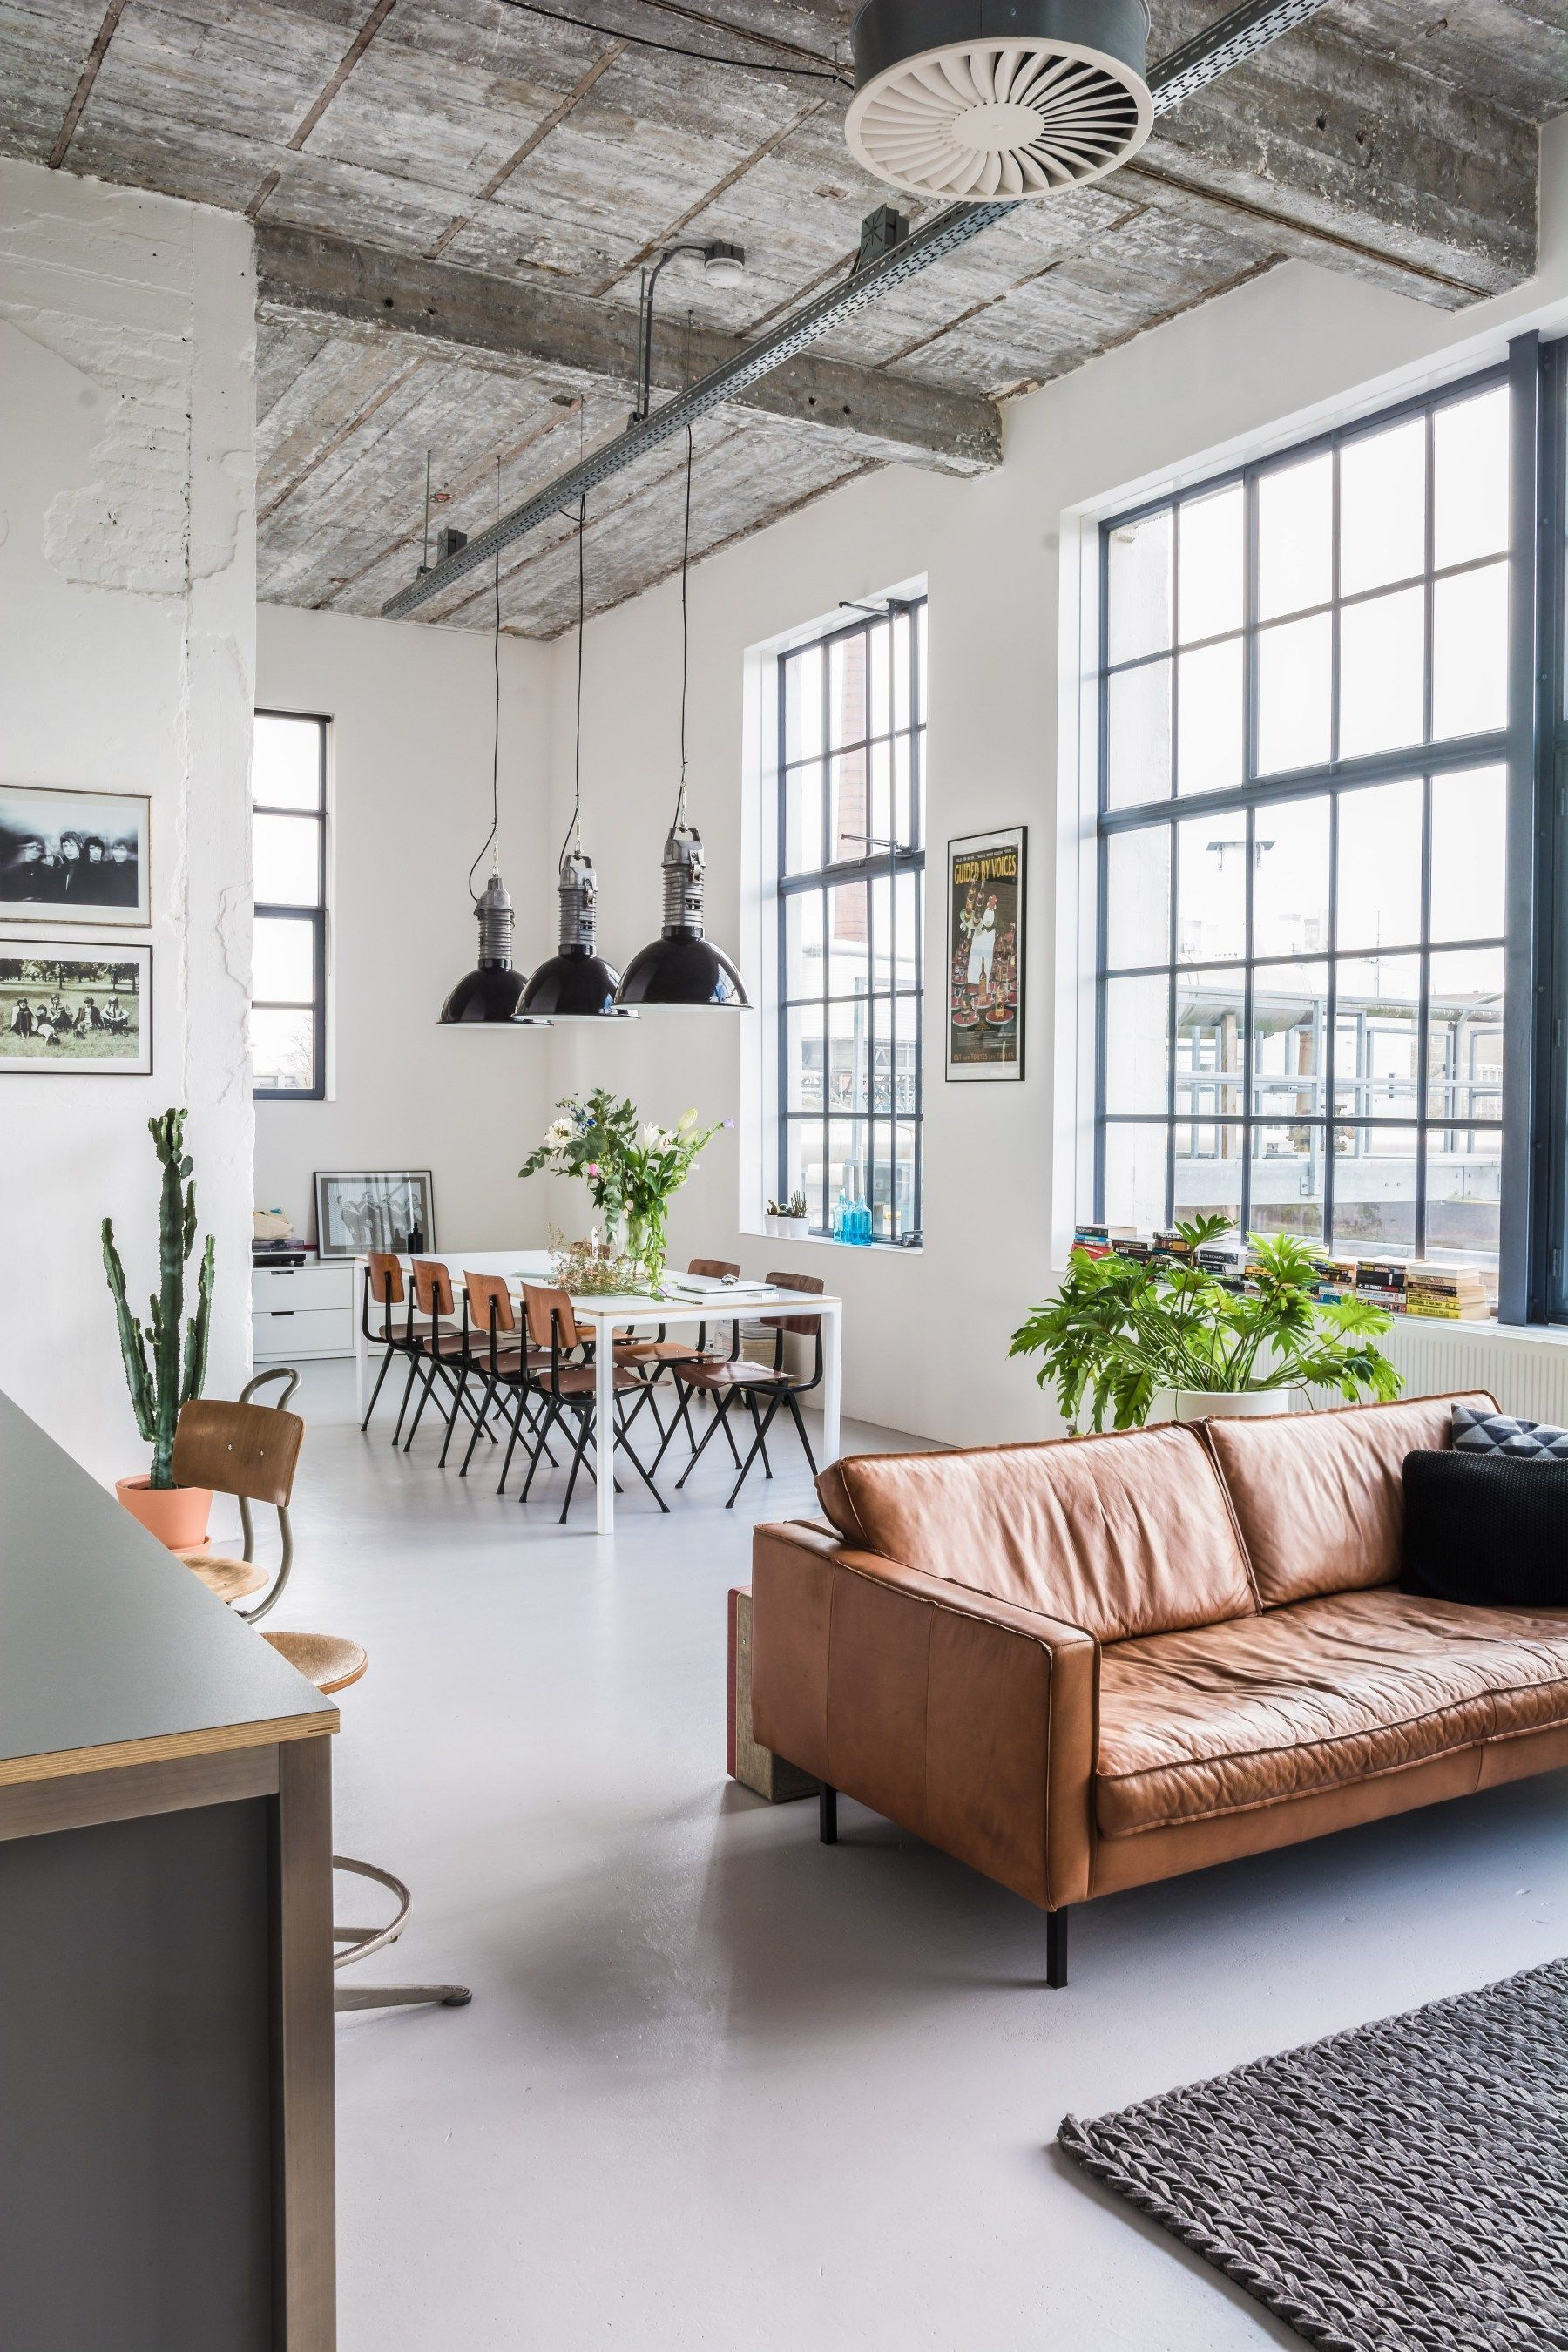 Industrial Design Wohnzimmer The Vintage Industrial Inspirations You Needed To Do A Home